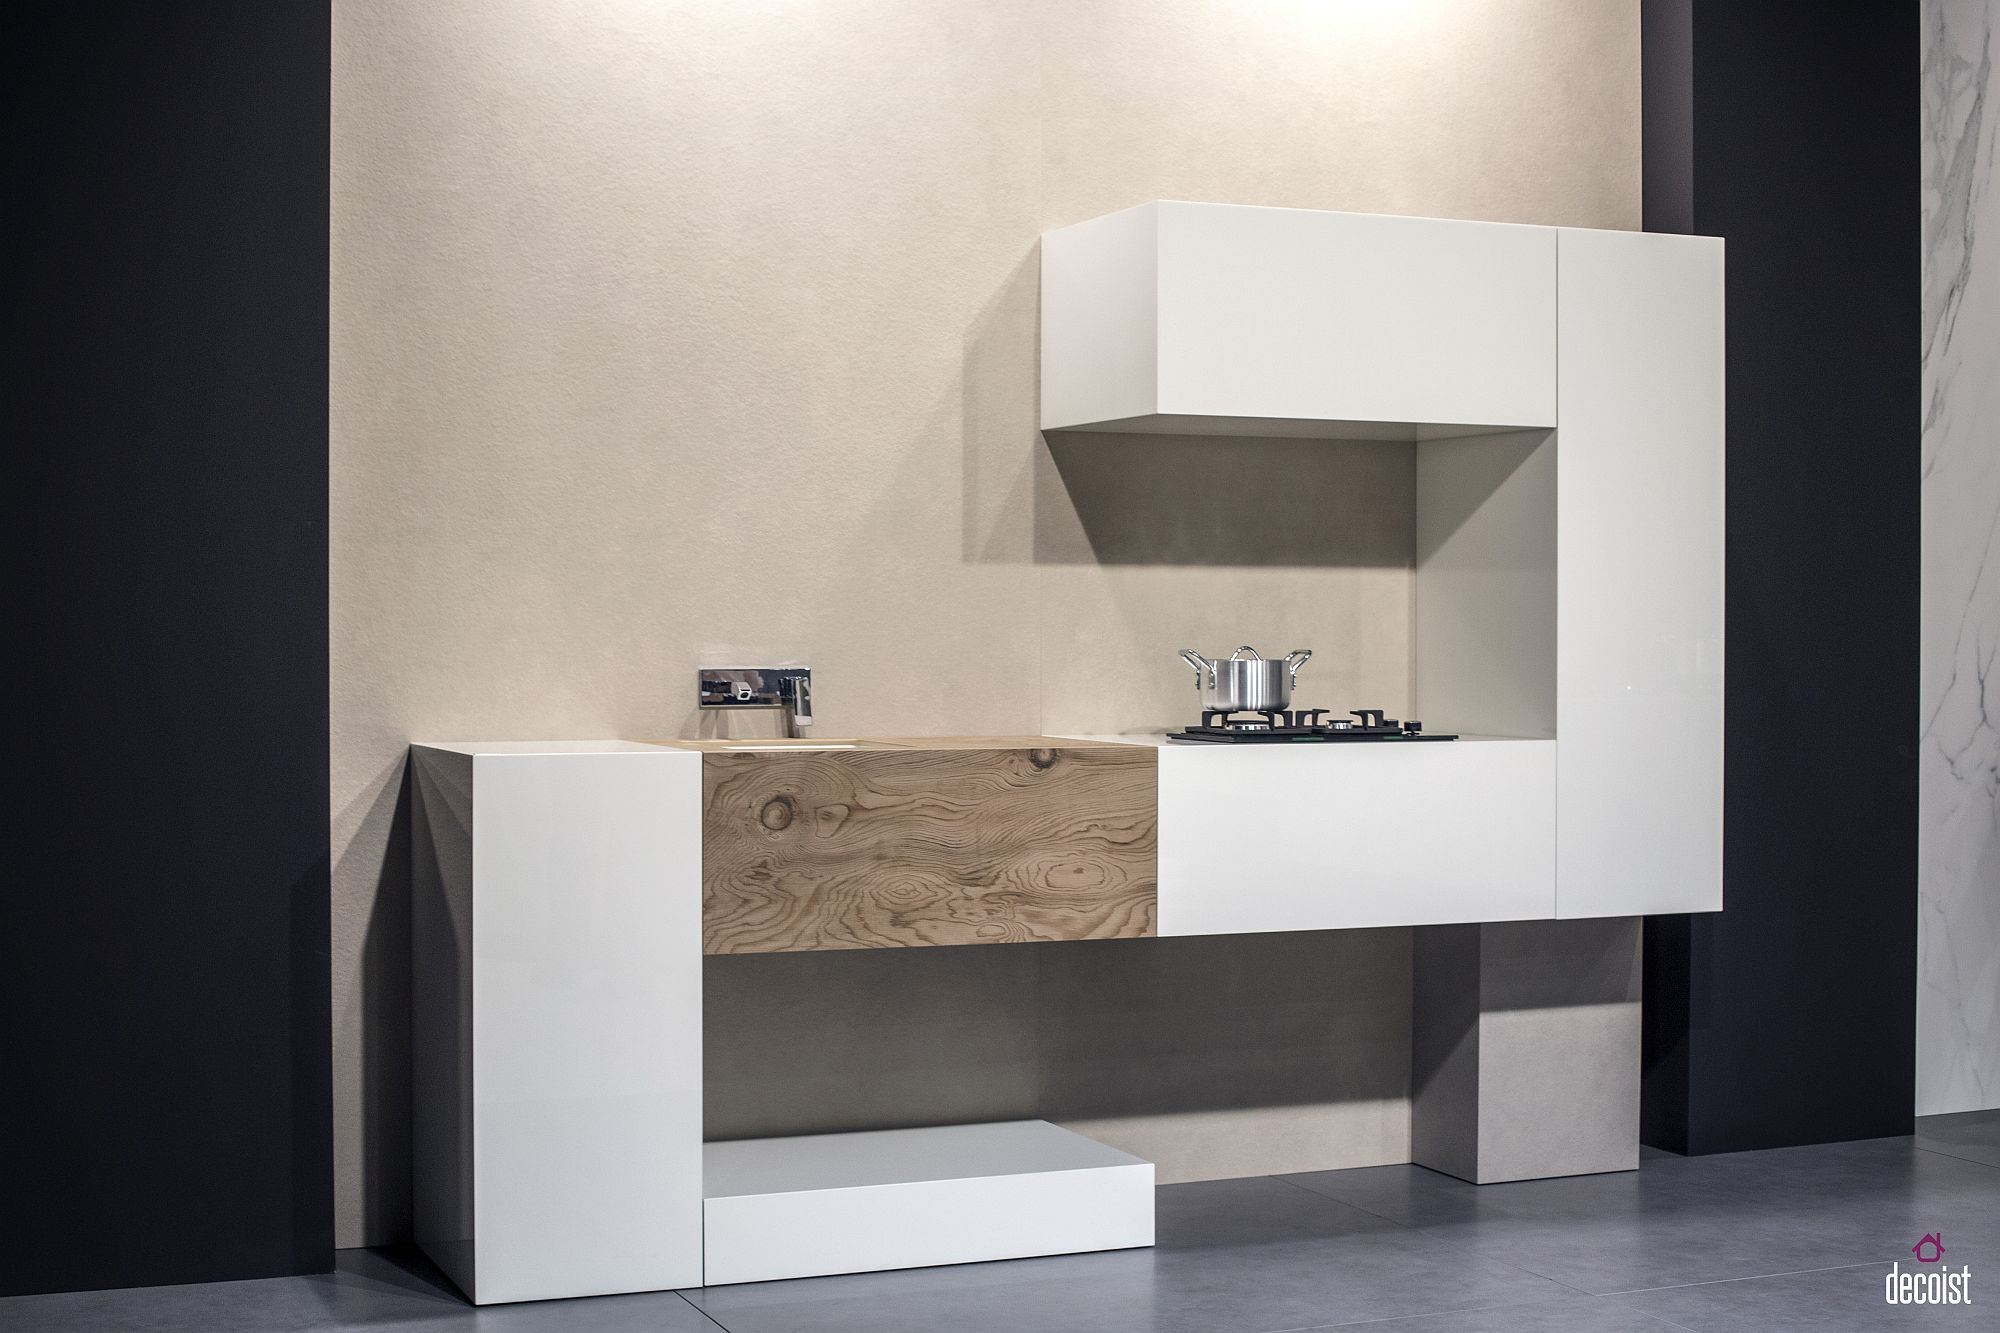 Inventive-and-minimal-one-wall-kitchen-design-feels-like-an-abstract-work-of-art